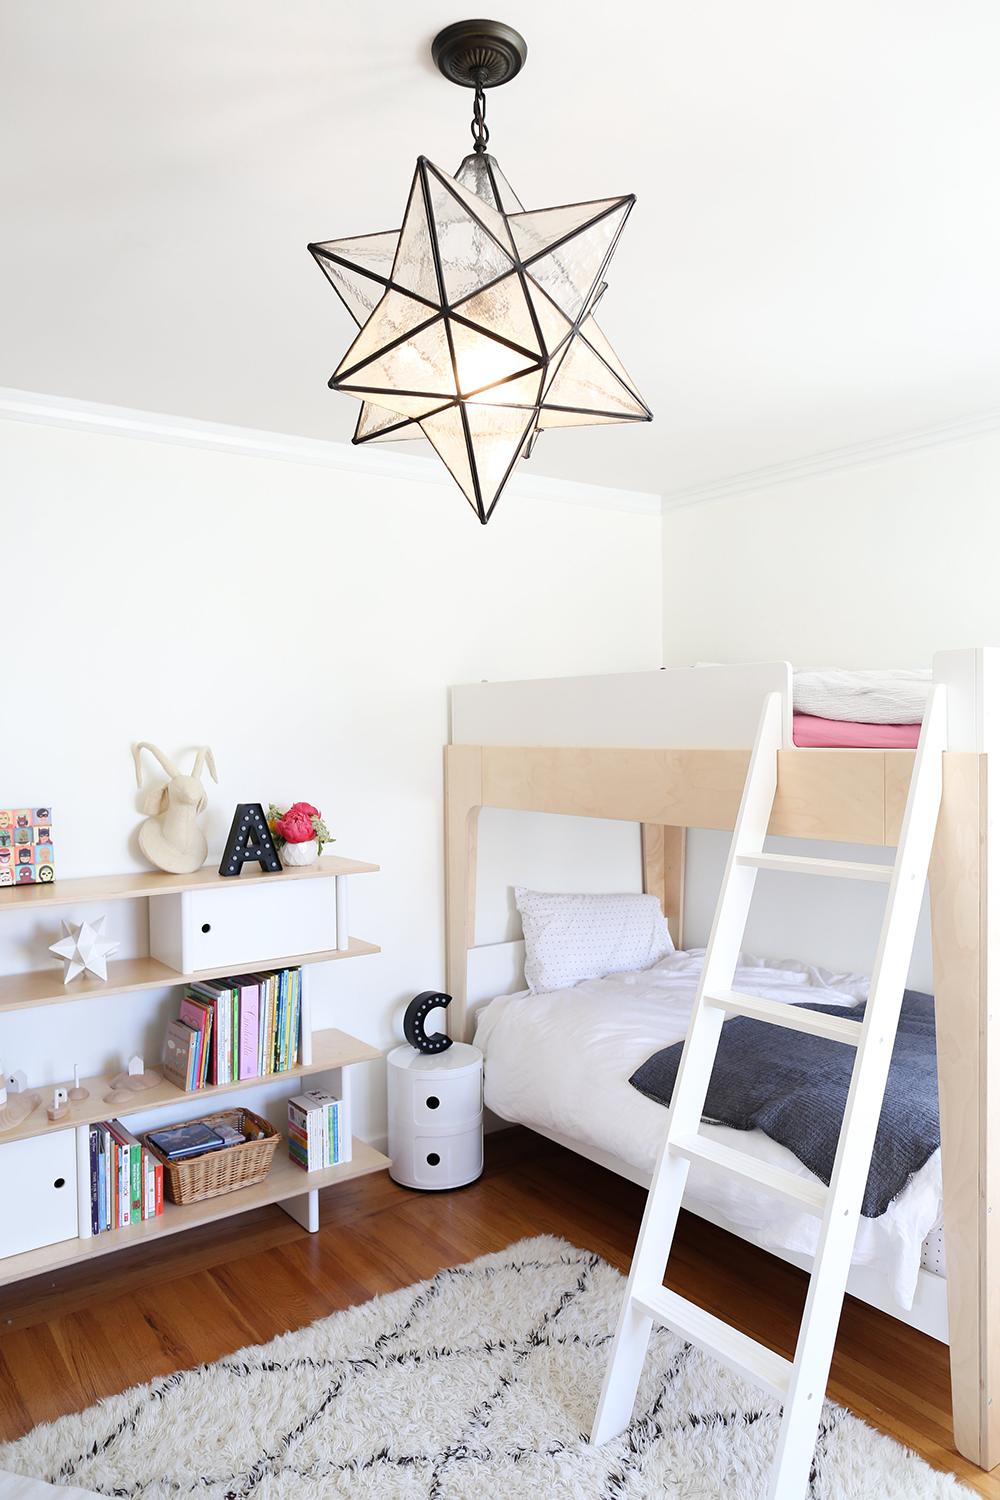 Shared Kids Bedroom The Shared Kids Room Copy Cat Chic